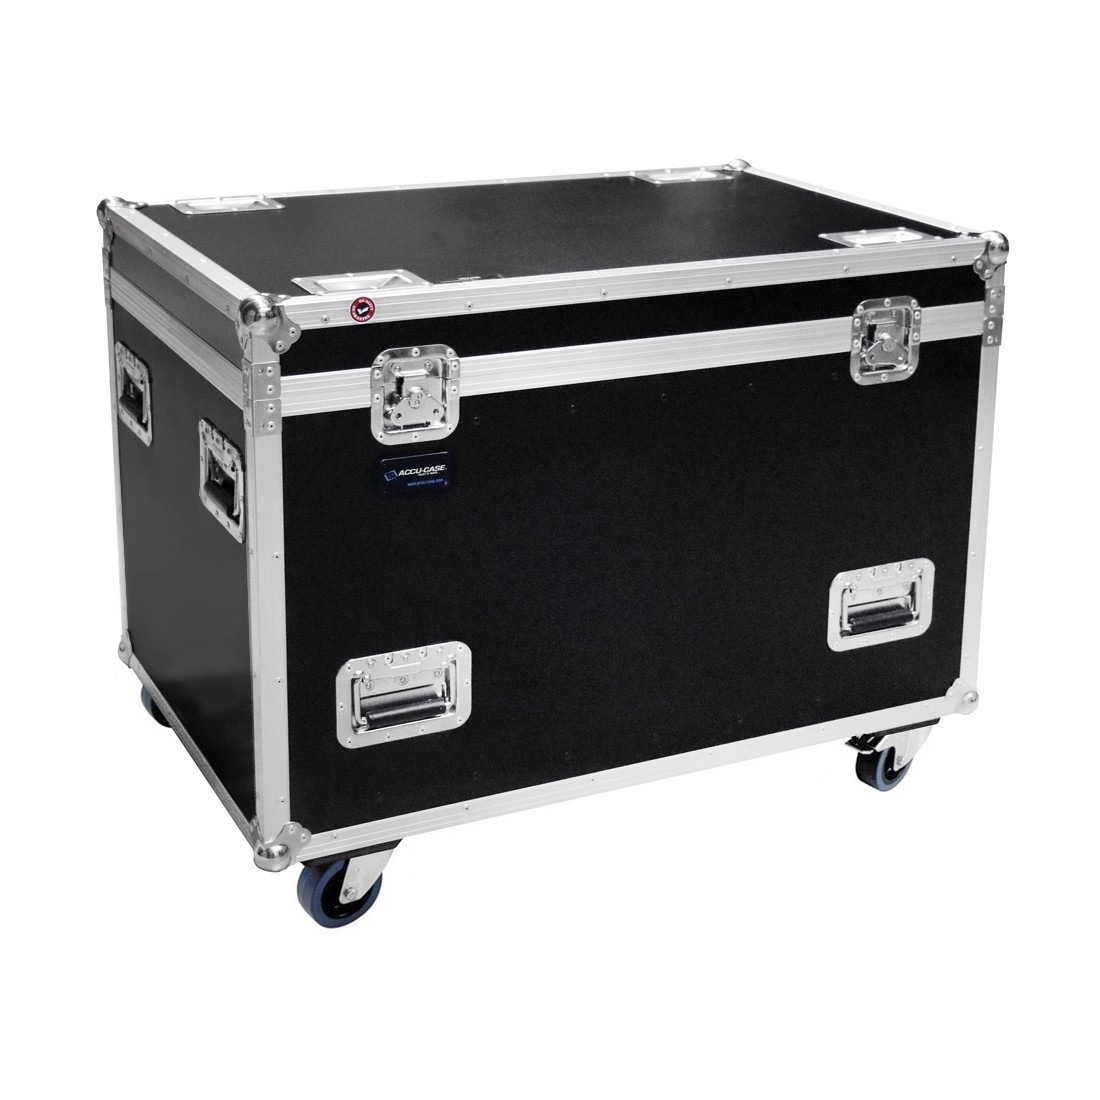 ADJ Touring Case 8x AV3/AV4 - Cases Light - Cases - Products - ADJ Group